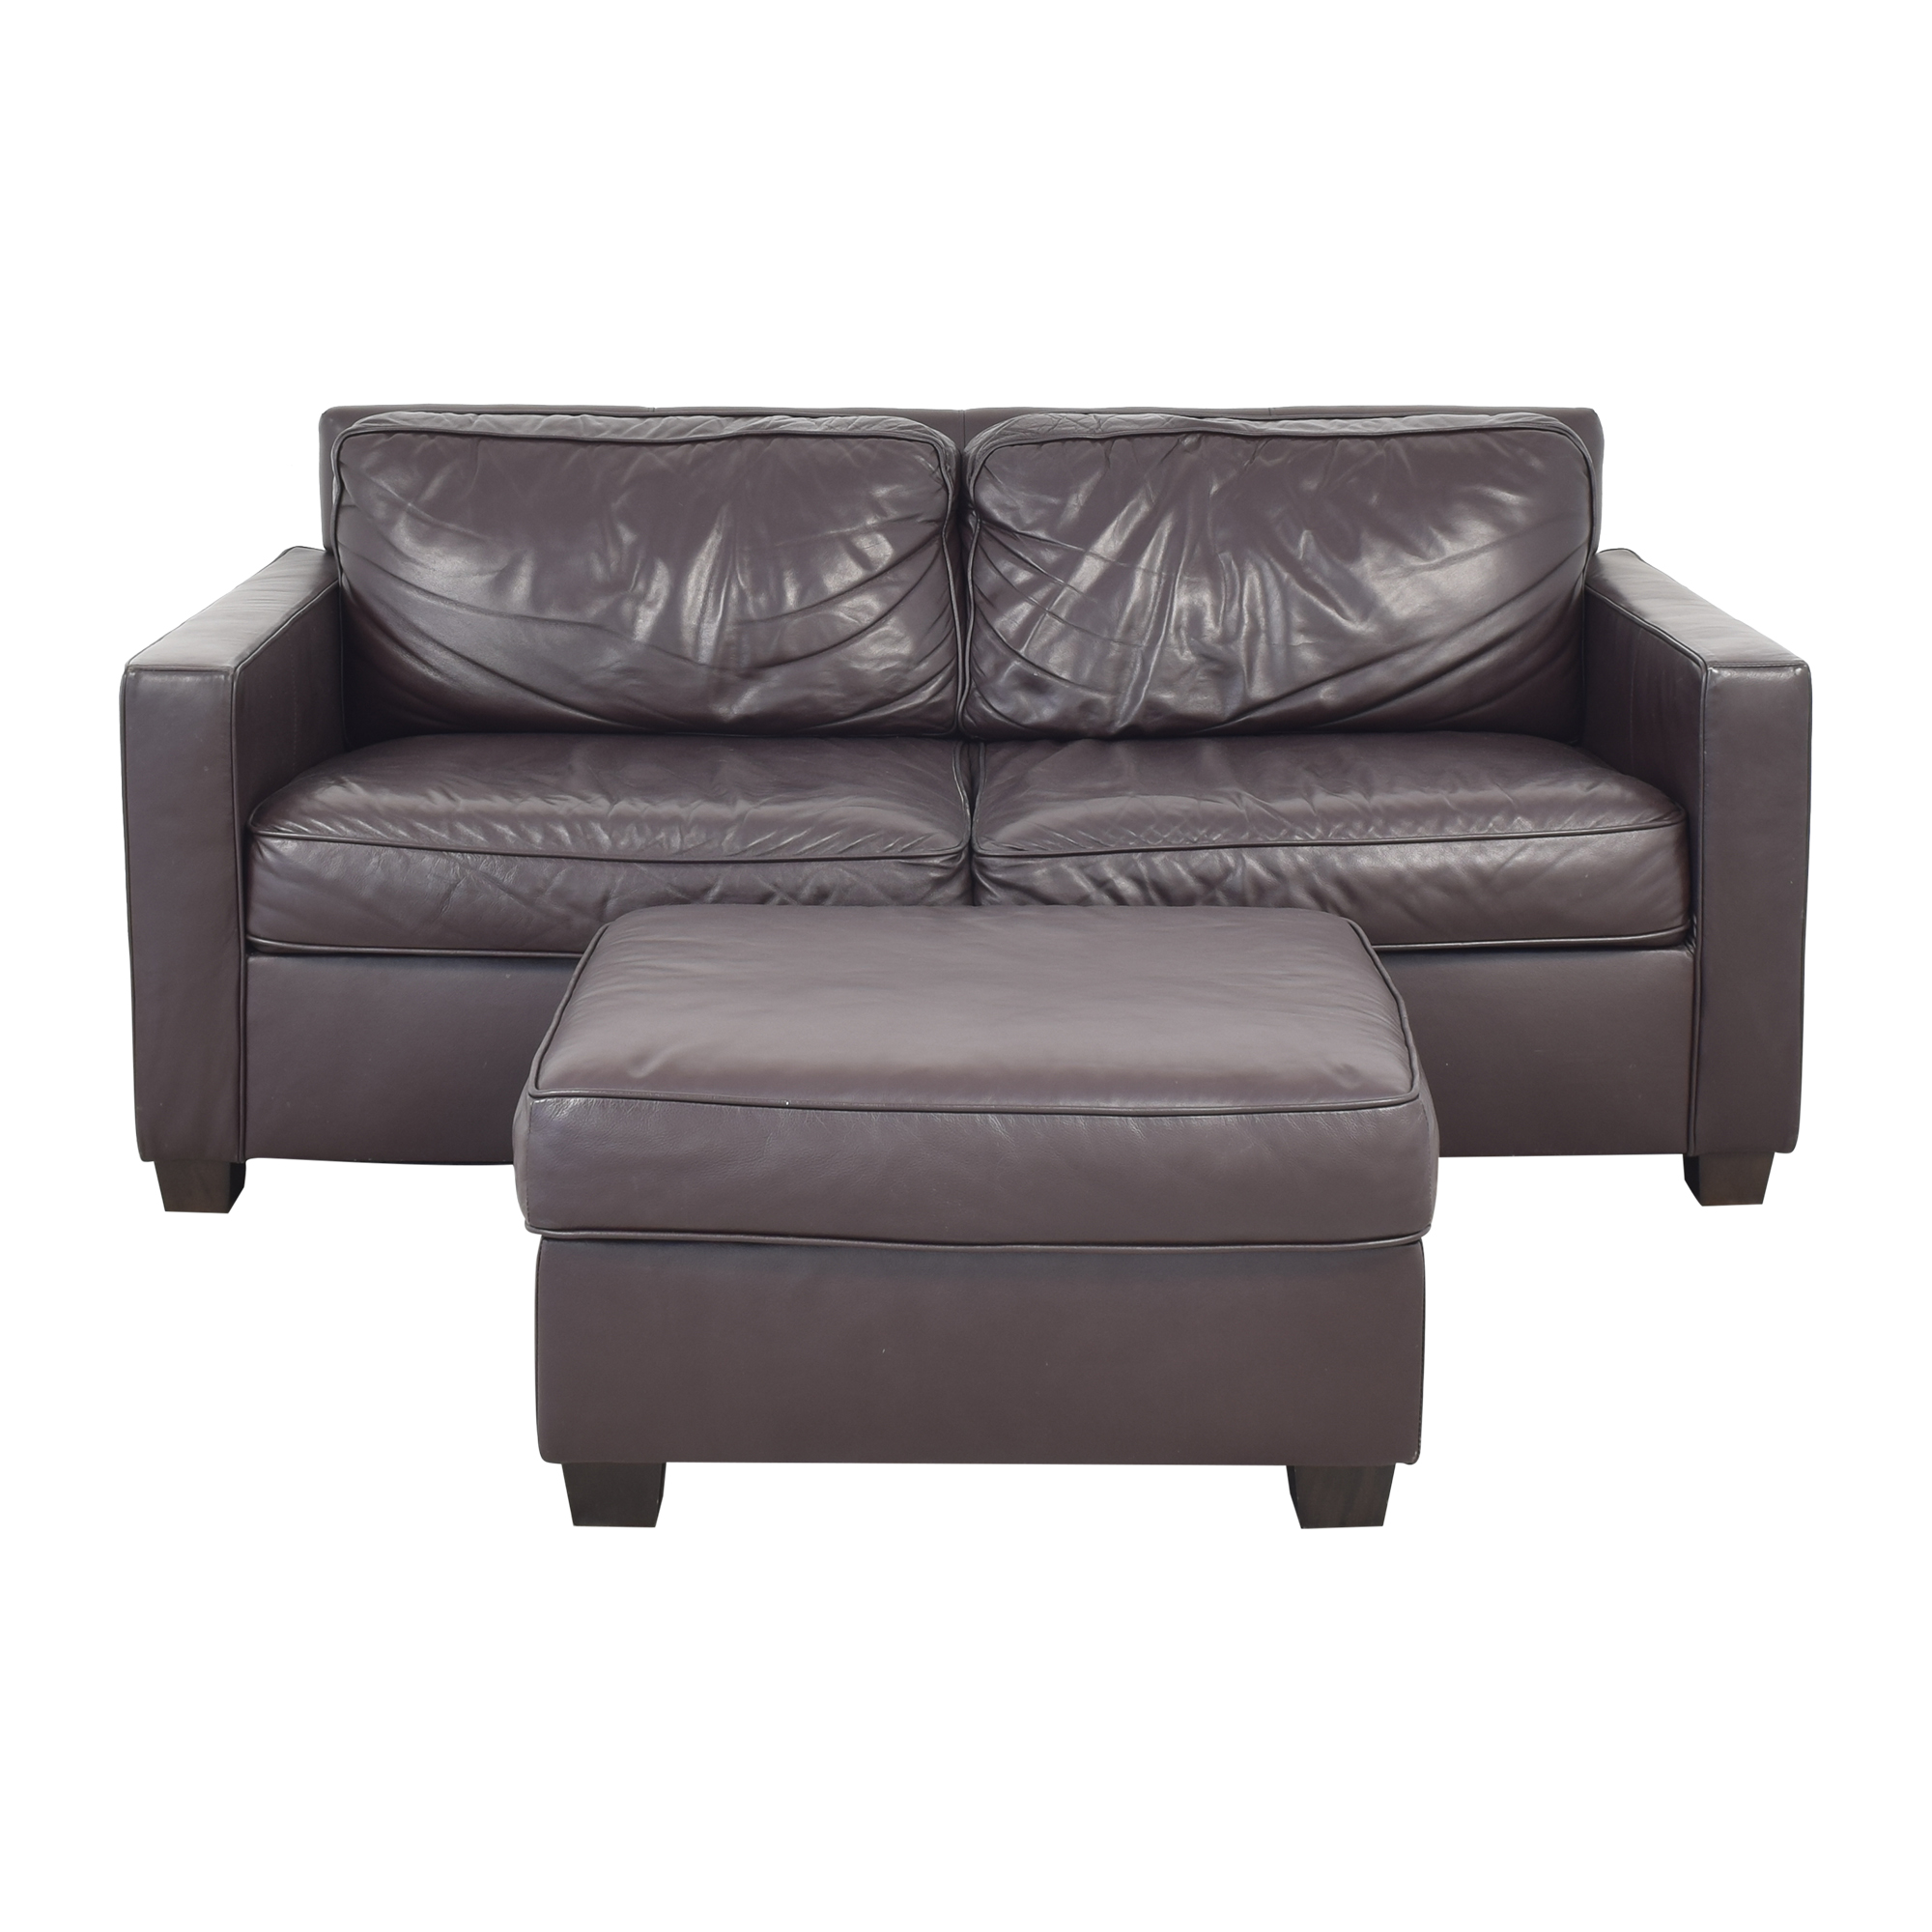 West Elm Henry Leather Sofa with Ottoman sale